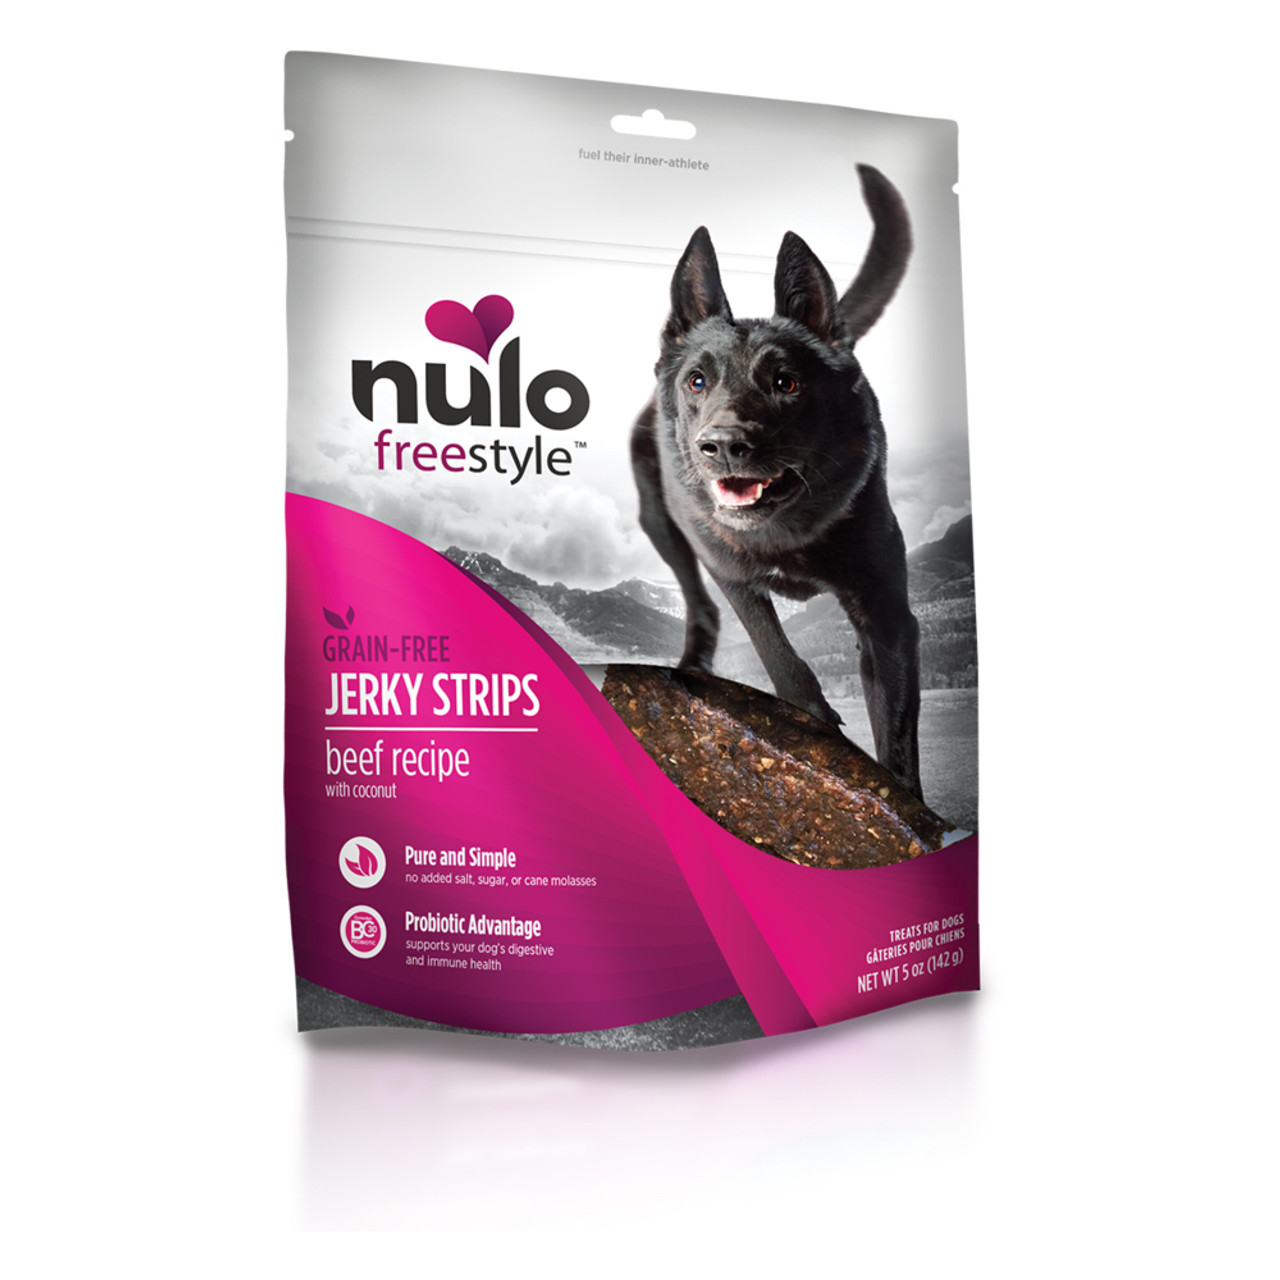 Nulo Freestyle Jerky Strips Beef Recipe Dog Treats